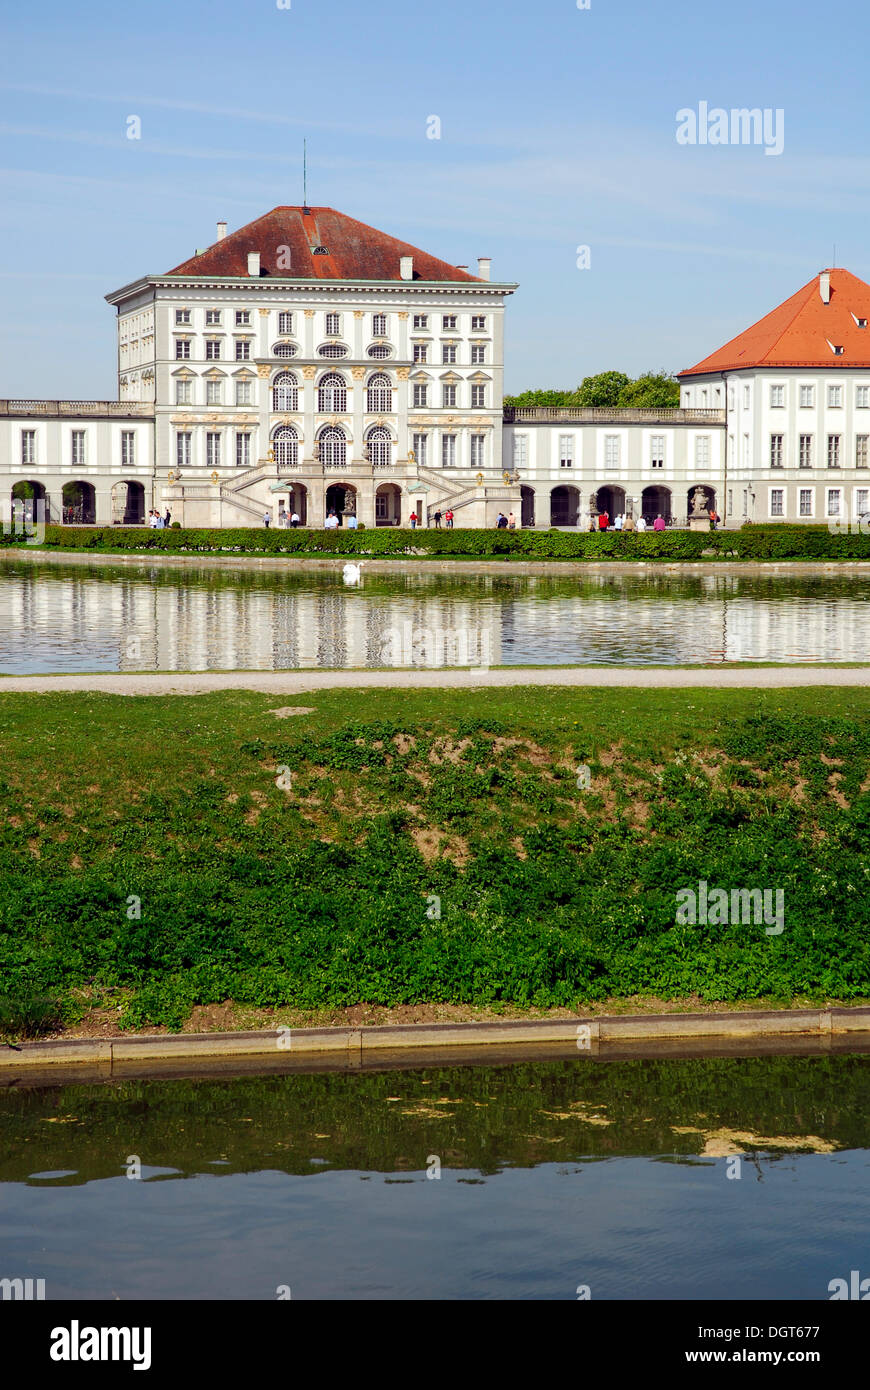 schloss nymphenburg palace and park stock photos schloss nymphenburg palace and park stock. Black Bedroom Furniture Sets. Home Design Ideas